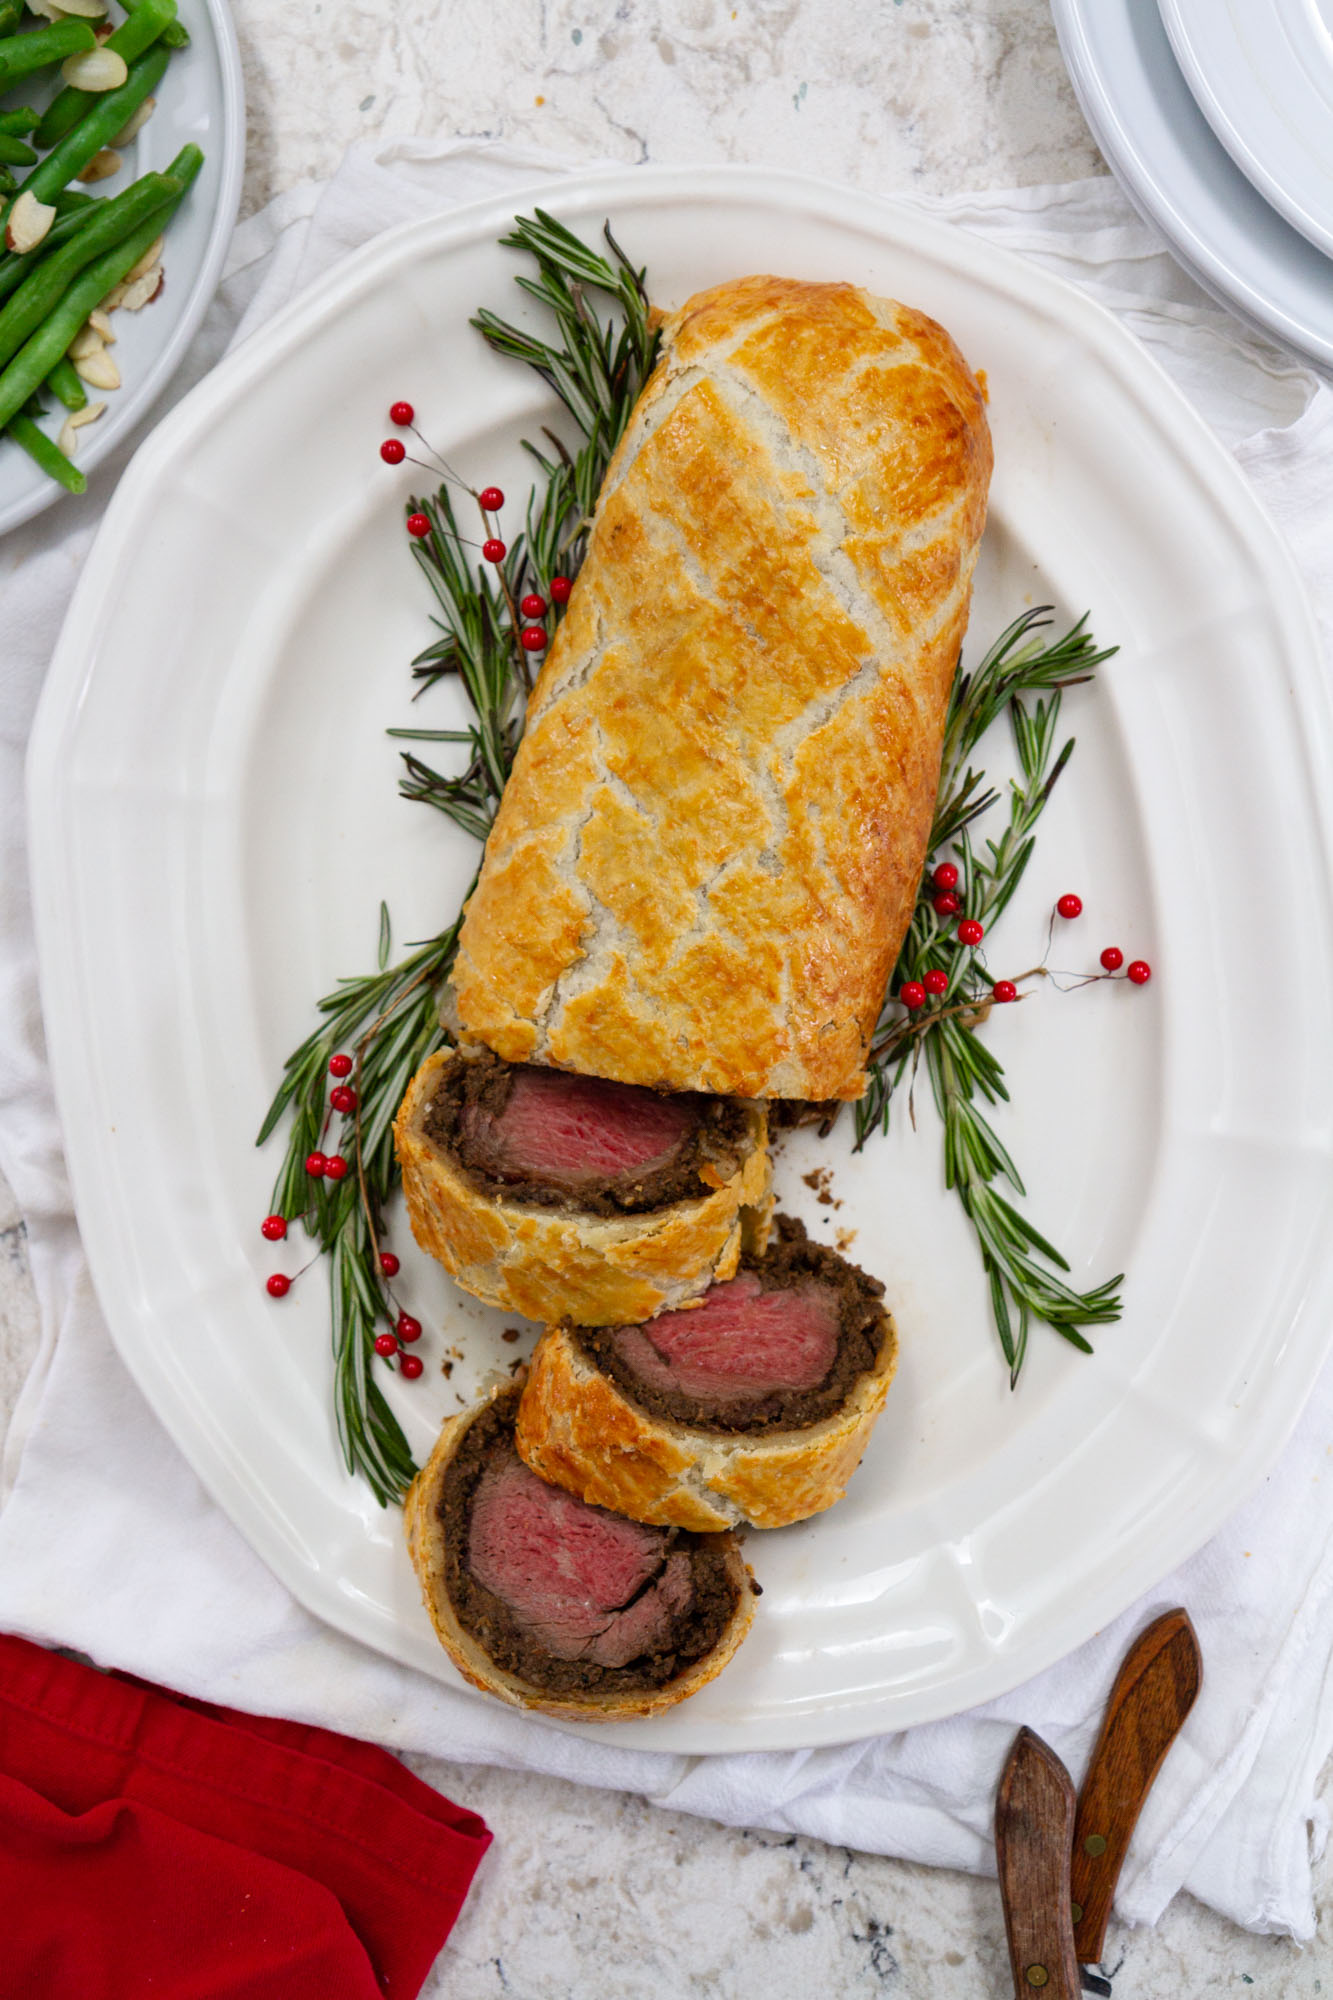 Beef Wellington -- Need a jaw-dropping, show stopping dish for the holidays? This Beef Wellington is the perfect recipe to do just that. @girlversusdough #girlversusdough #BeefItsWhatsForDinner #BeefUpTheHolidays #NicelyDone